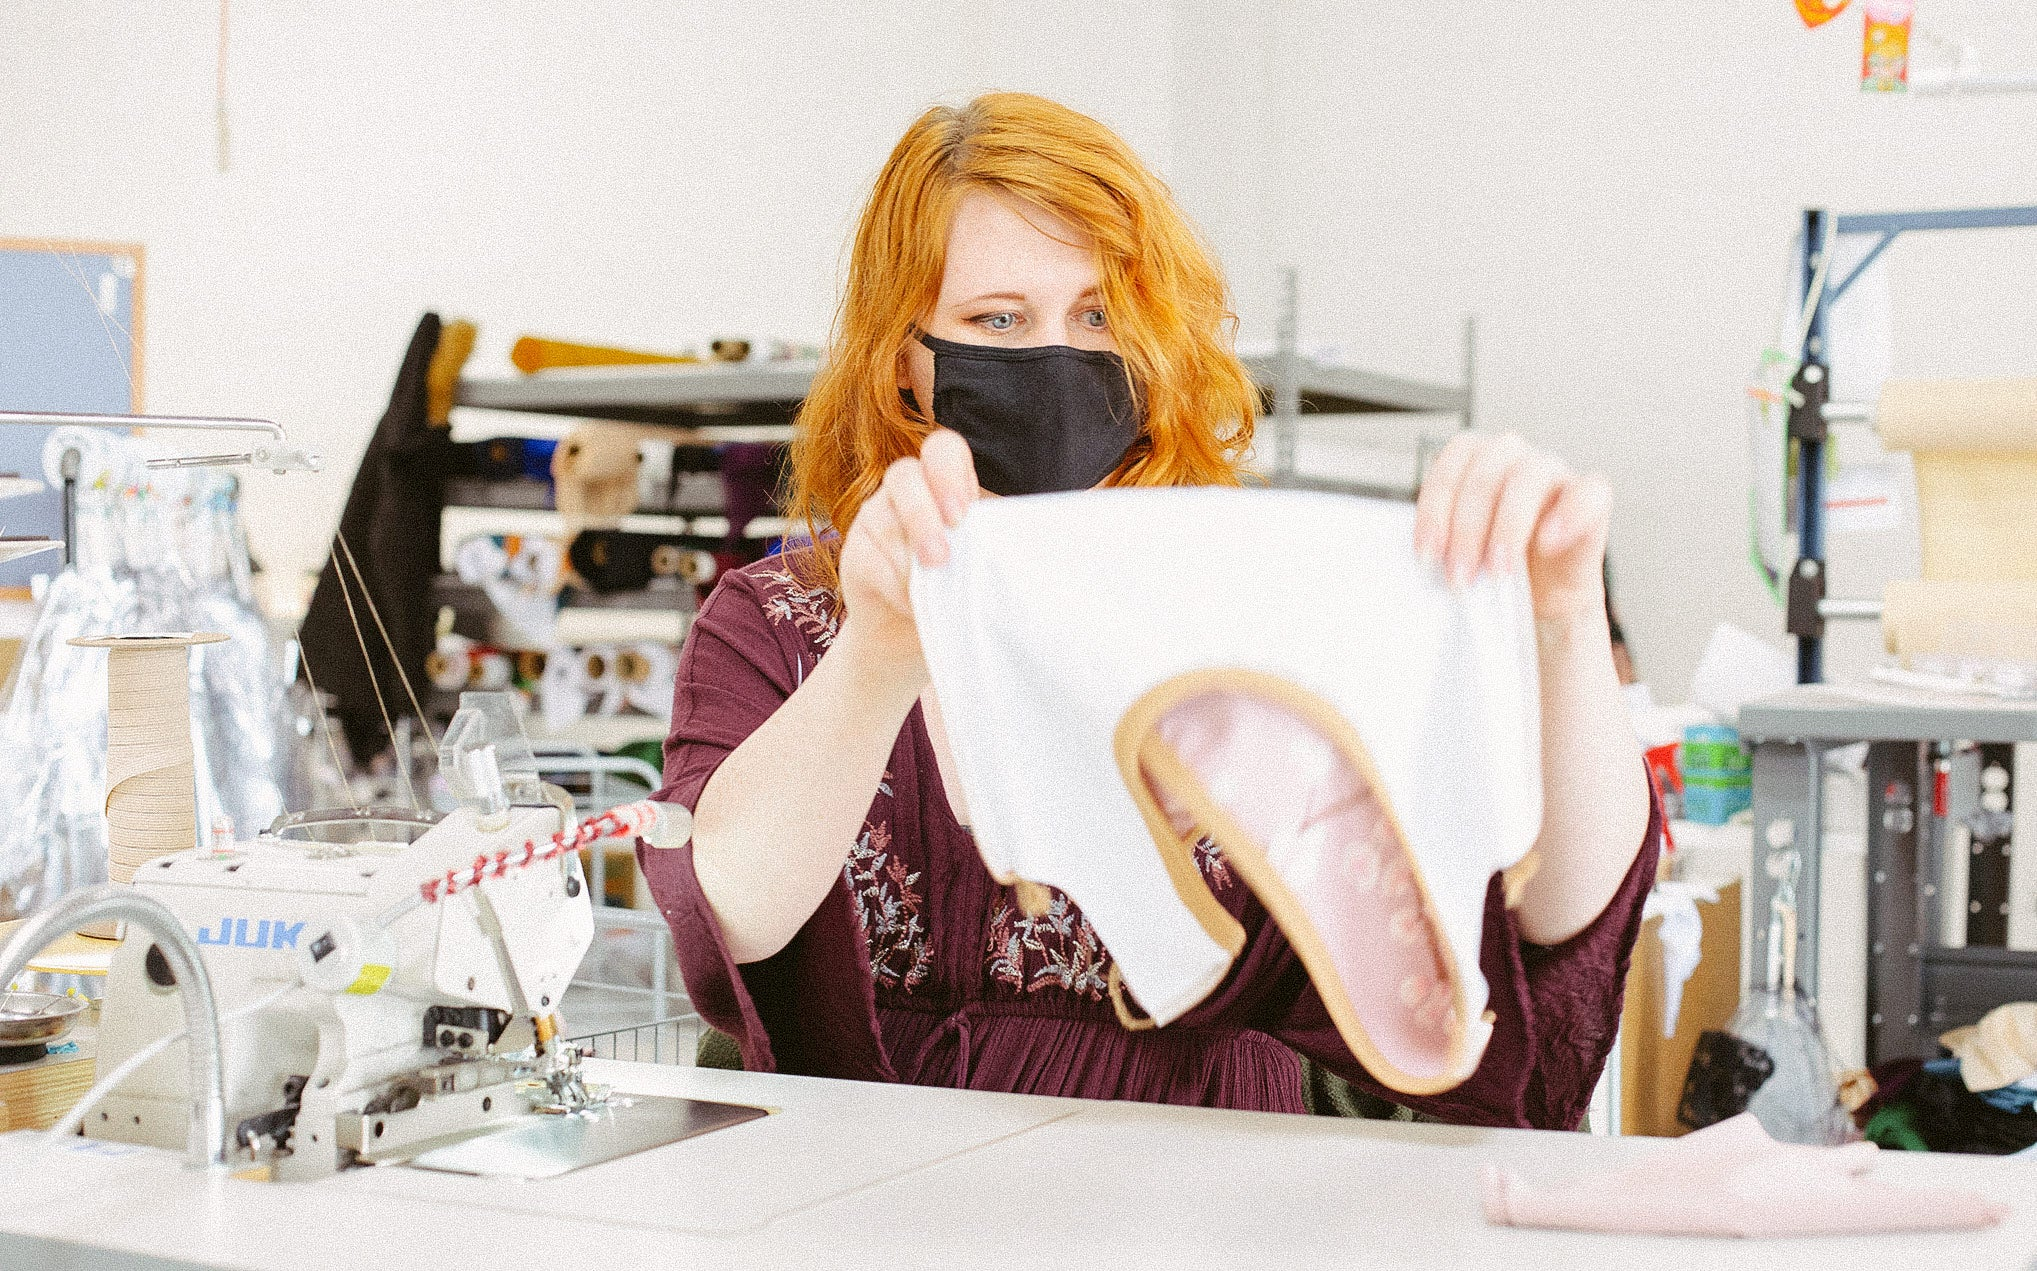 Taylor sits at a sewing machine and is looking at a leotard she is holding up in front of her.